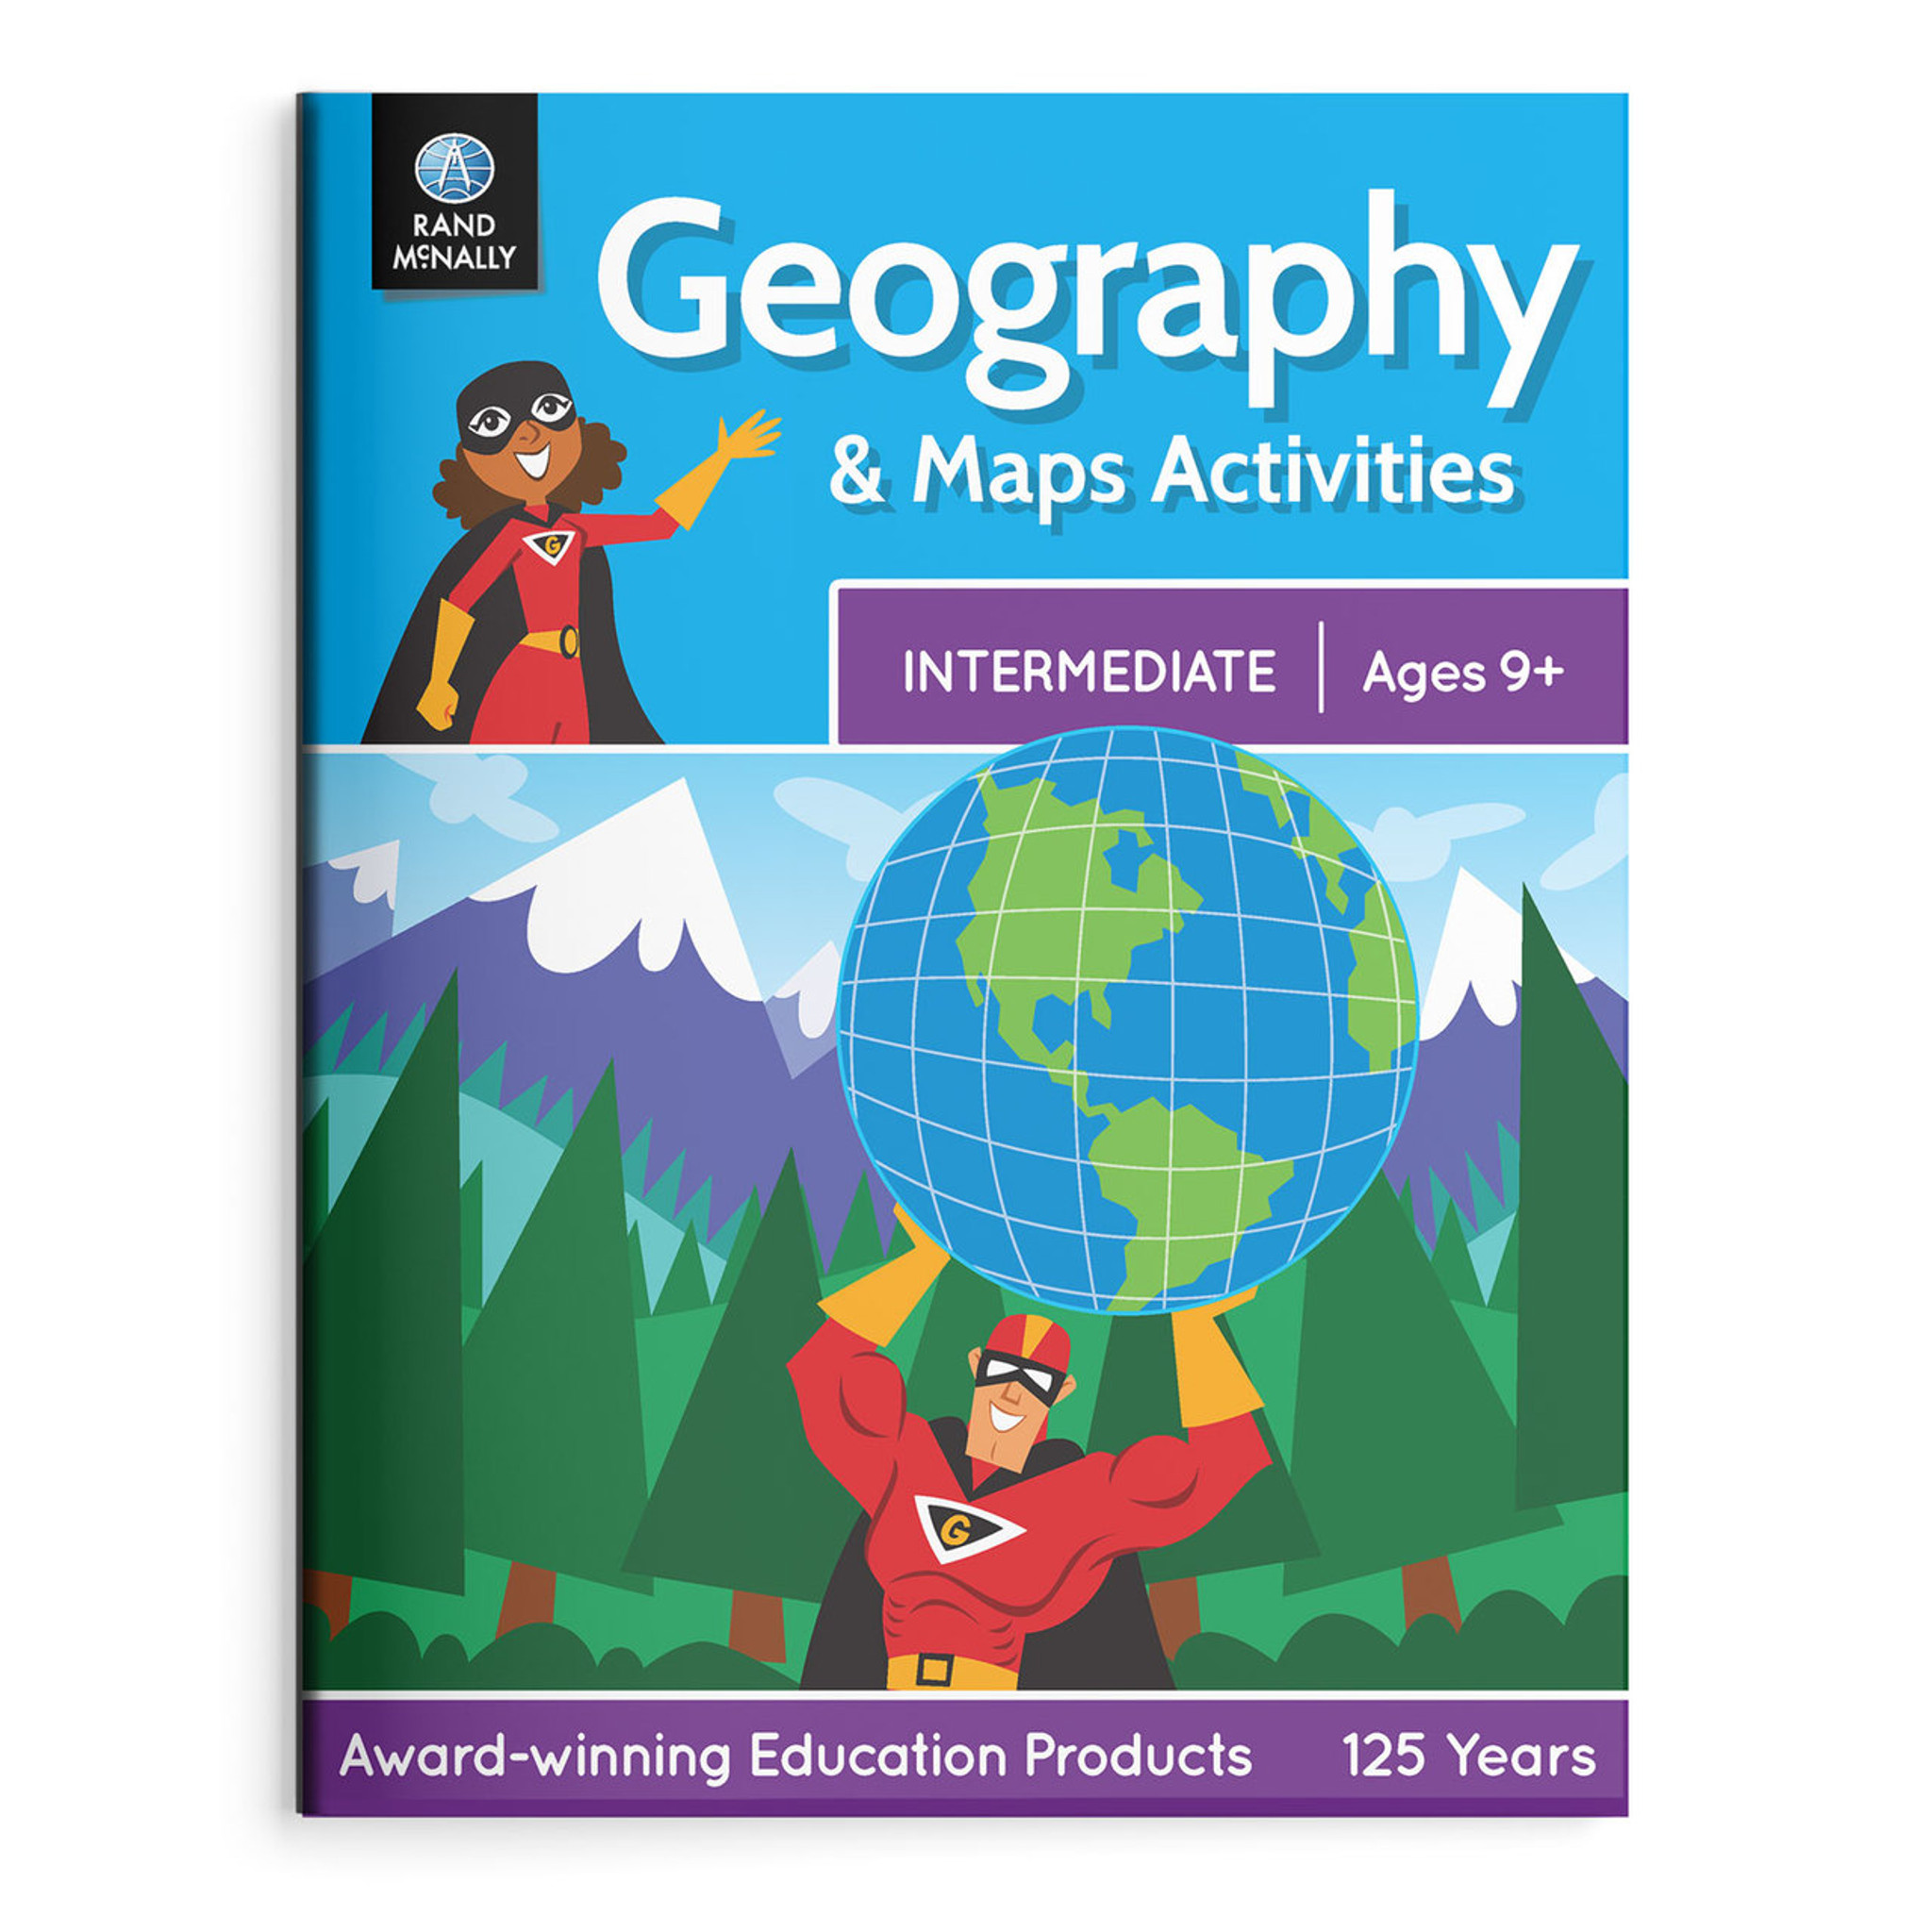 Geography & Maps Activities, Intermediate | Ages 9+ on geography books, history map, europe map, geography education, geography of india, population geography, map of australia map, geography climate, historical events map, indian geography, geography papers, map of greece, north america map, landforms map, geography game, prime meridian map, environmental geography, altitude map, current day map, italian culture map, ecological economics map, philippine geography, political map, asia map, mountain ranges map, government map, map of, climate map, human geography, the current weather map, geography of science, geographical map, astronomy map, atlas map,